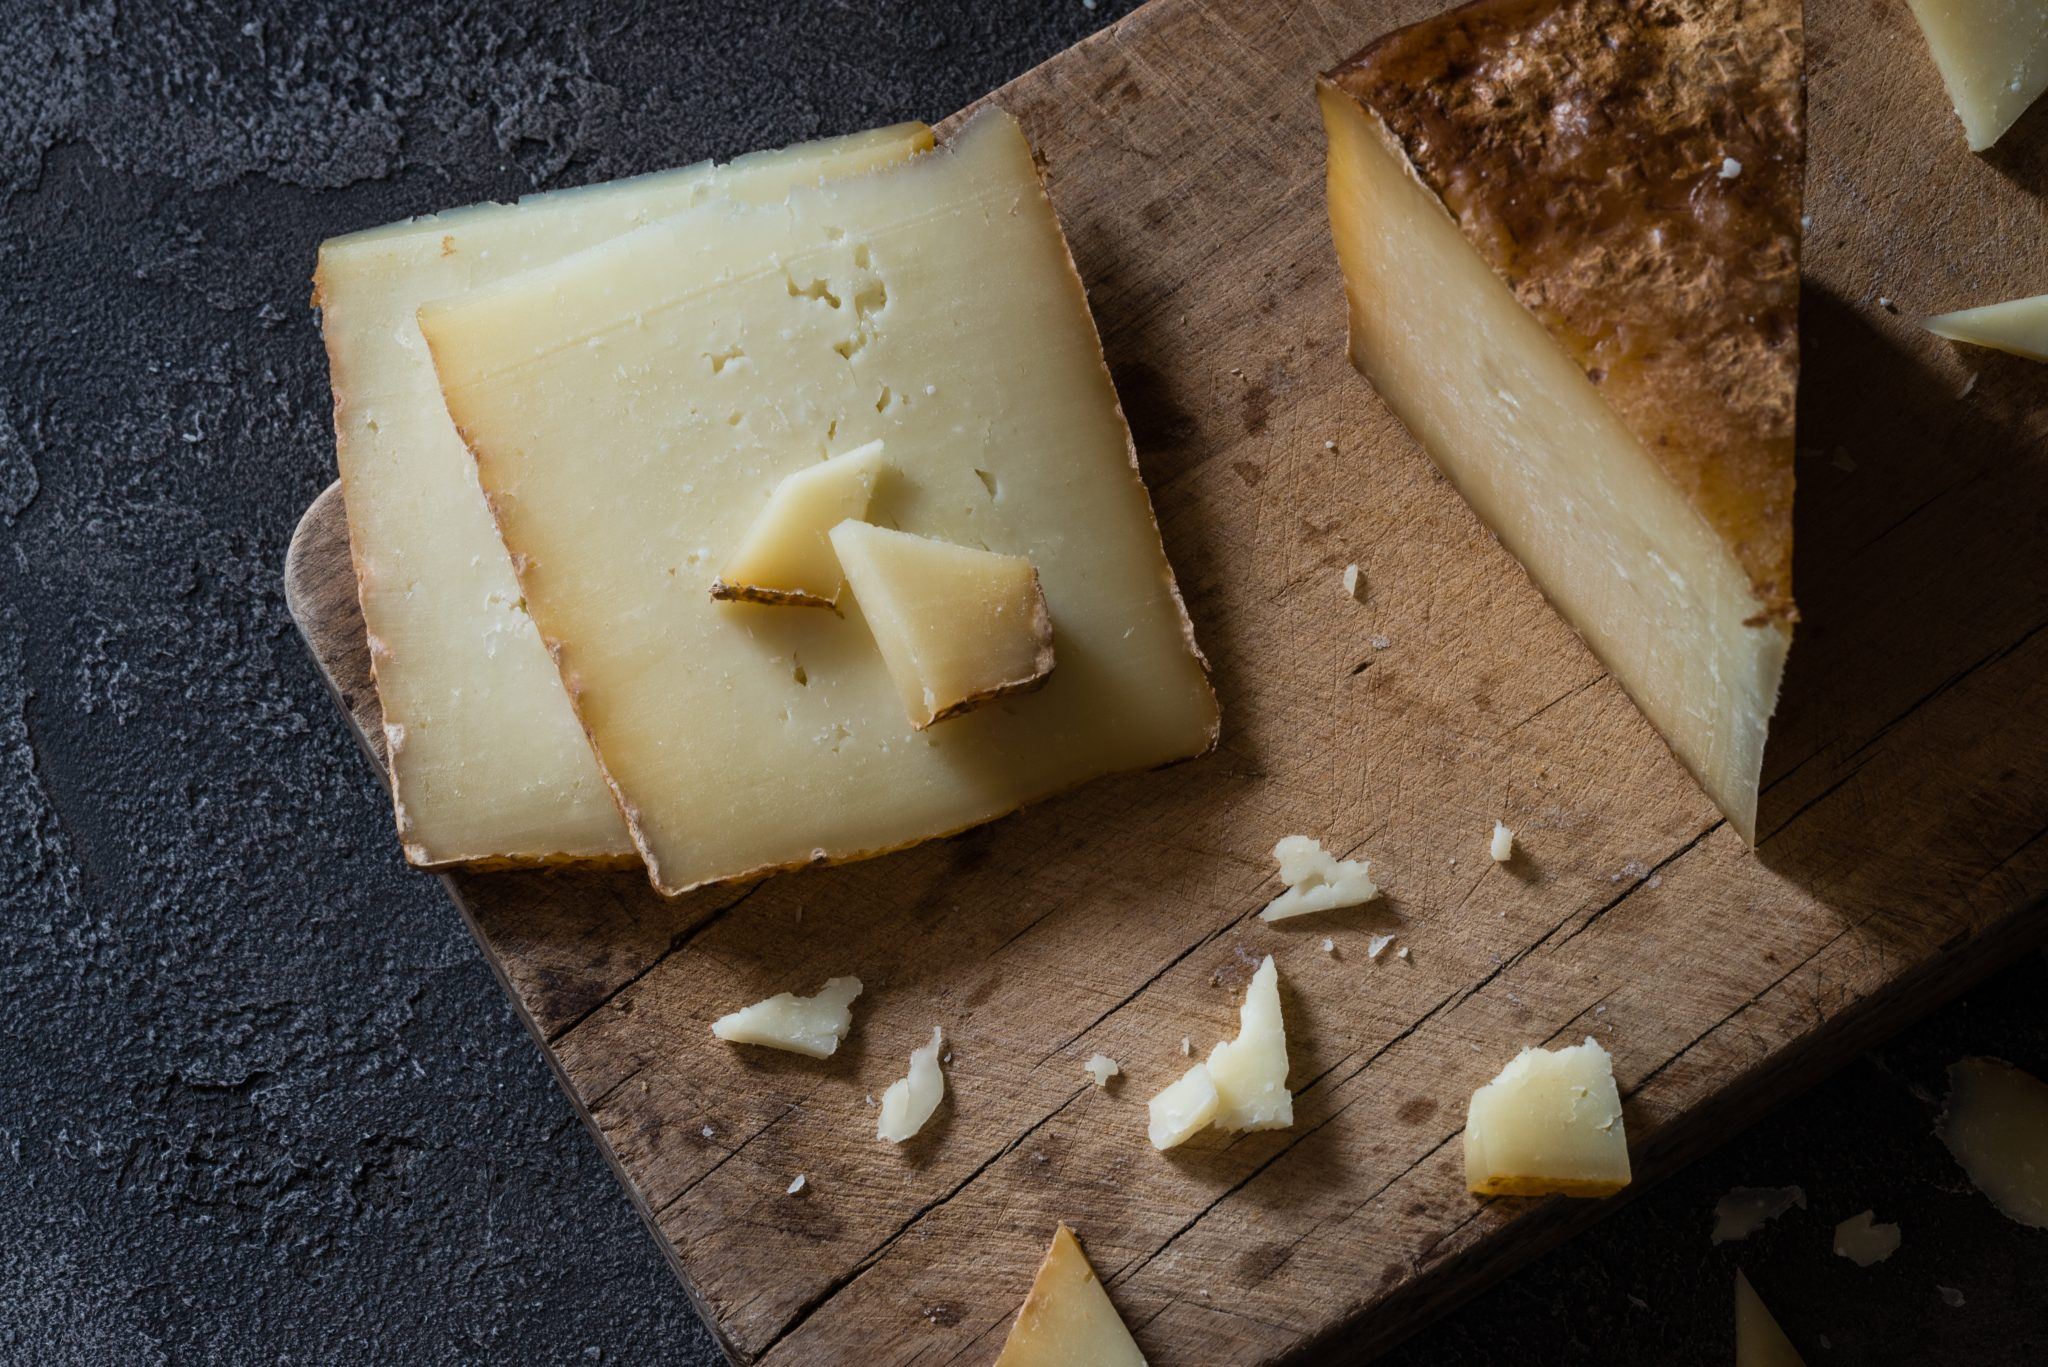 How Long Does Hard Cheese Last? Can It Go Bad?